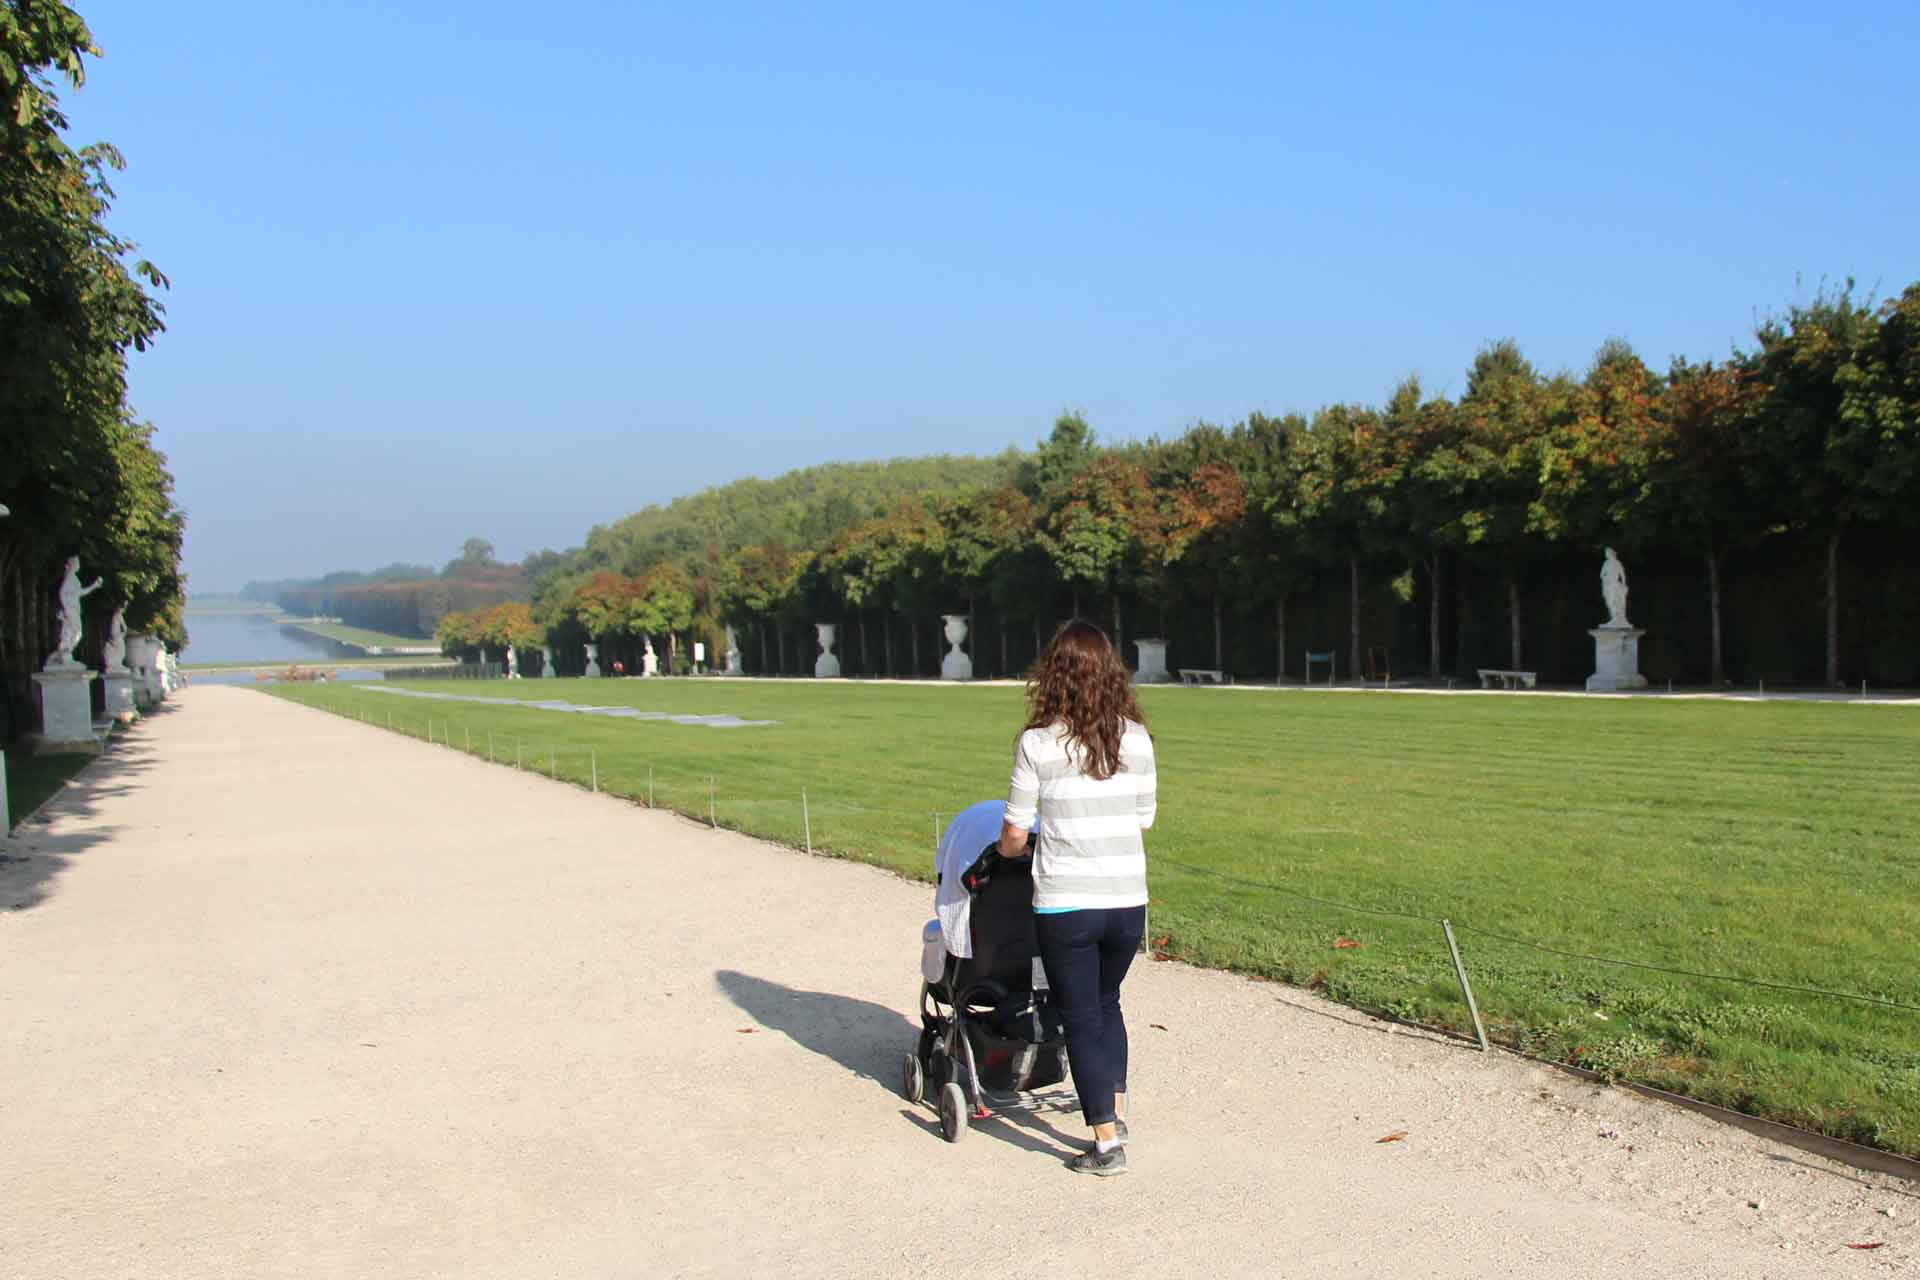 Walking with baby in stroller at the Palace de Versailles